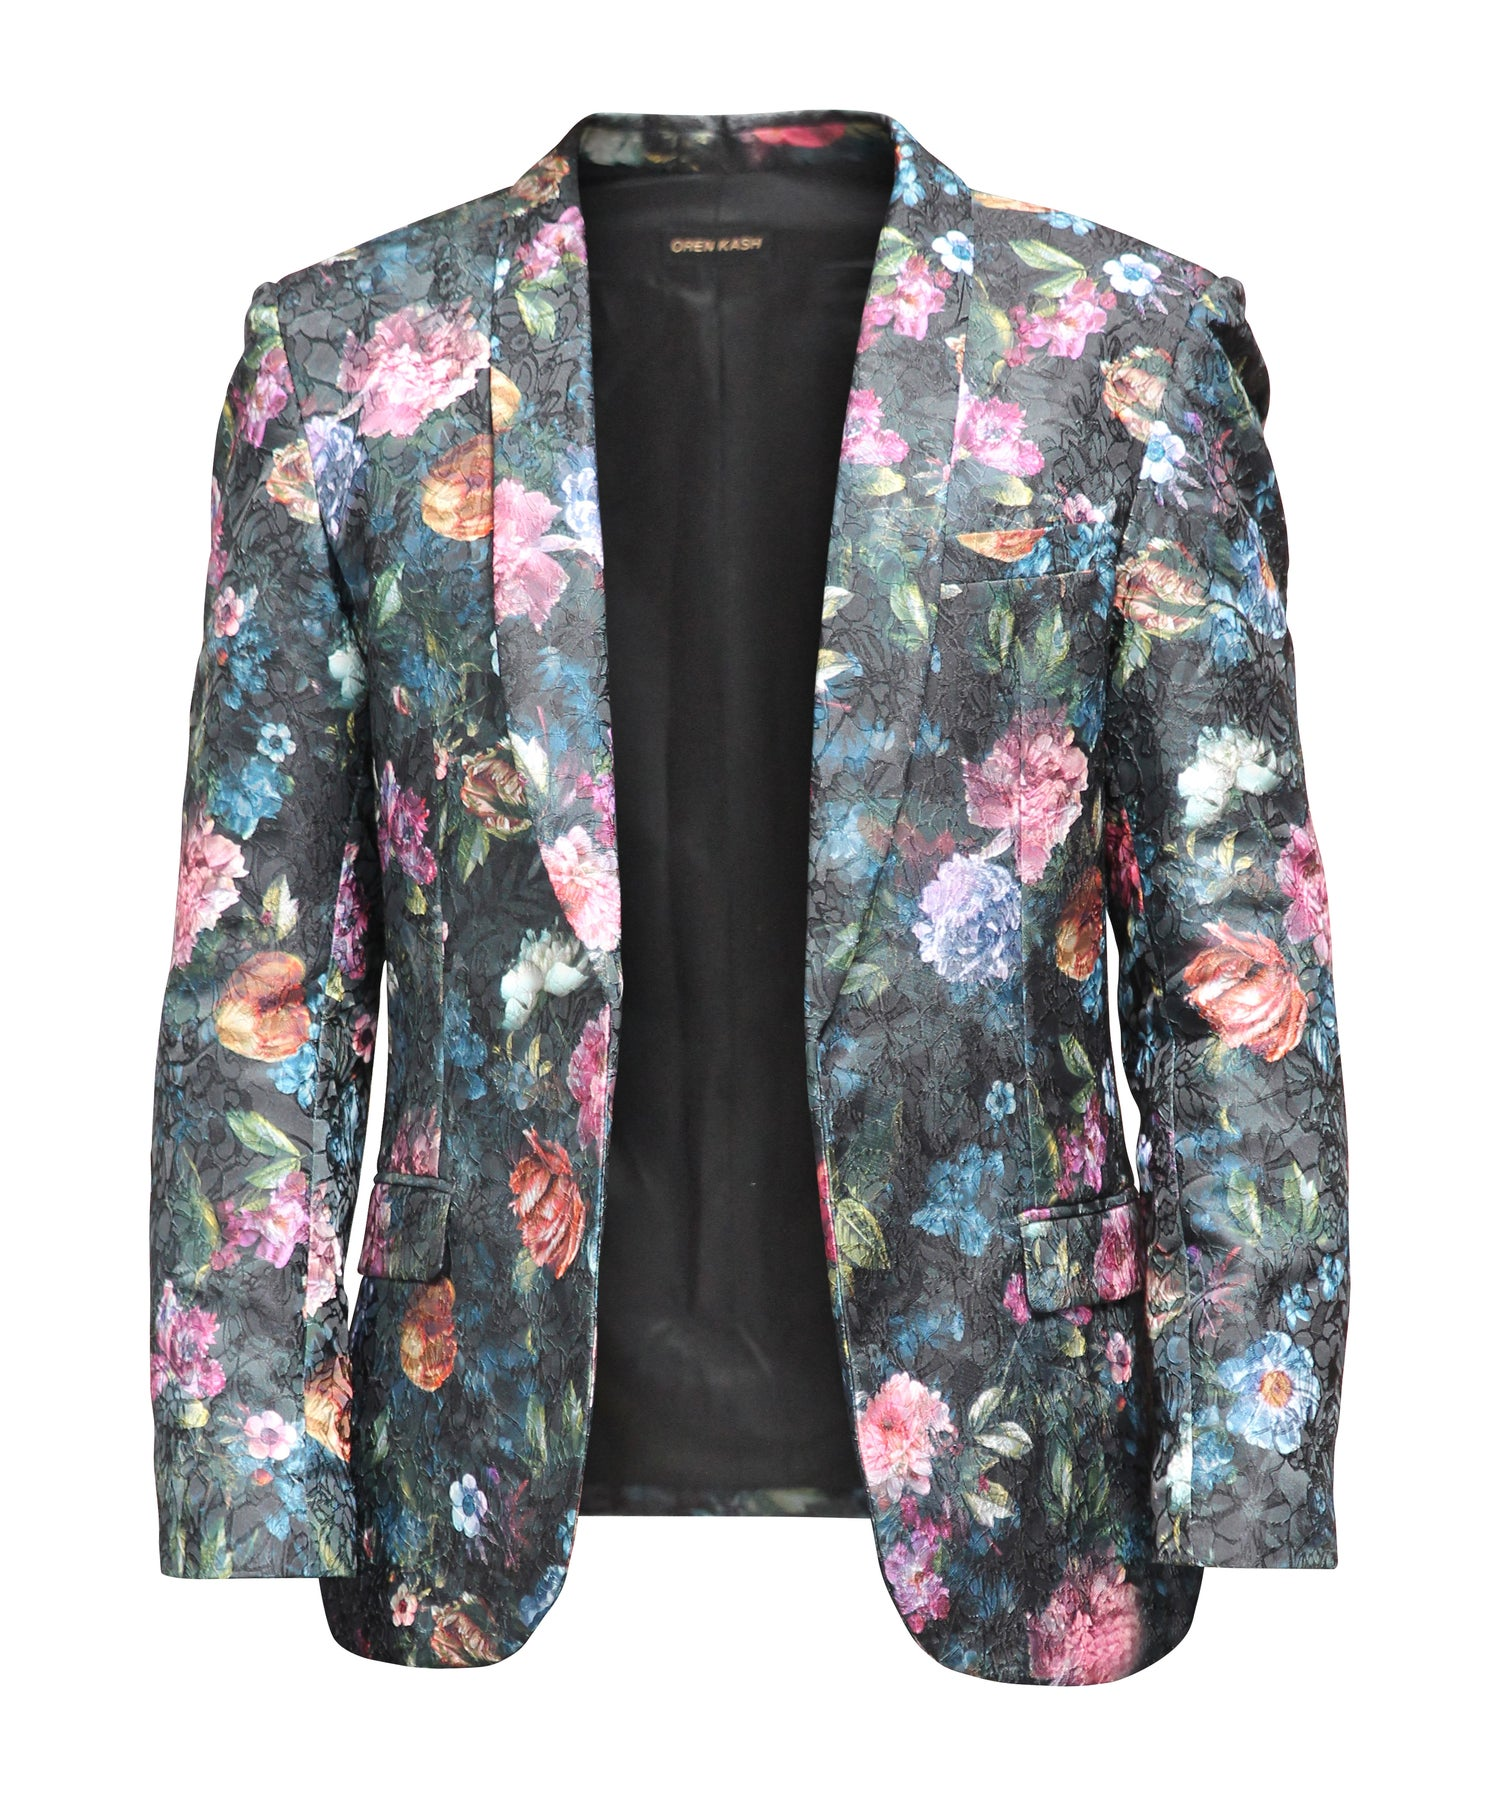 Image of Printed Floral Brocade Blazer